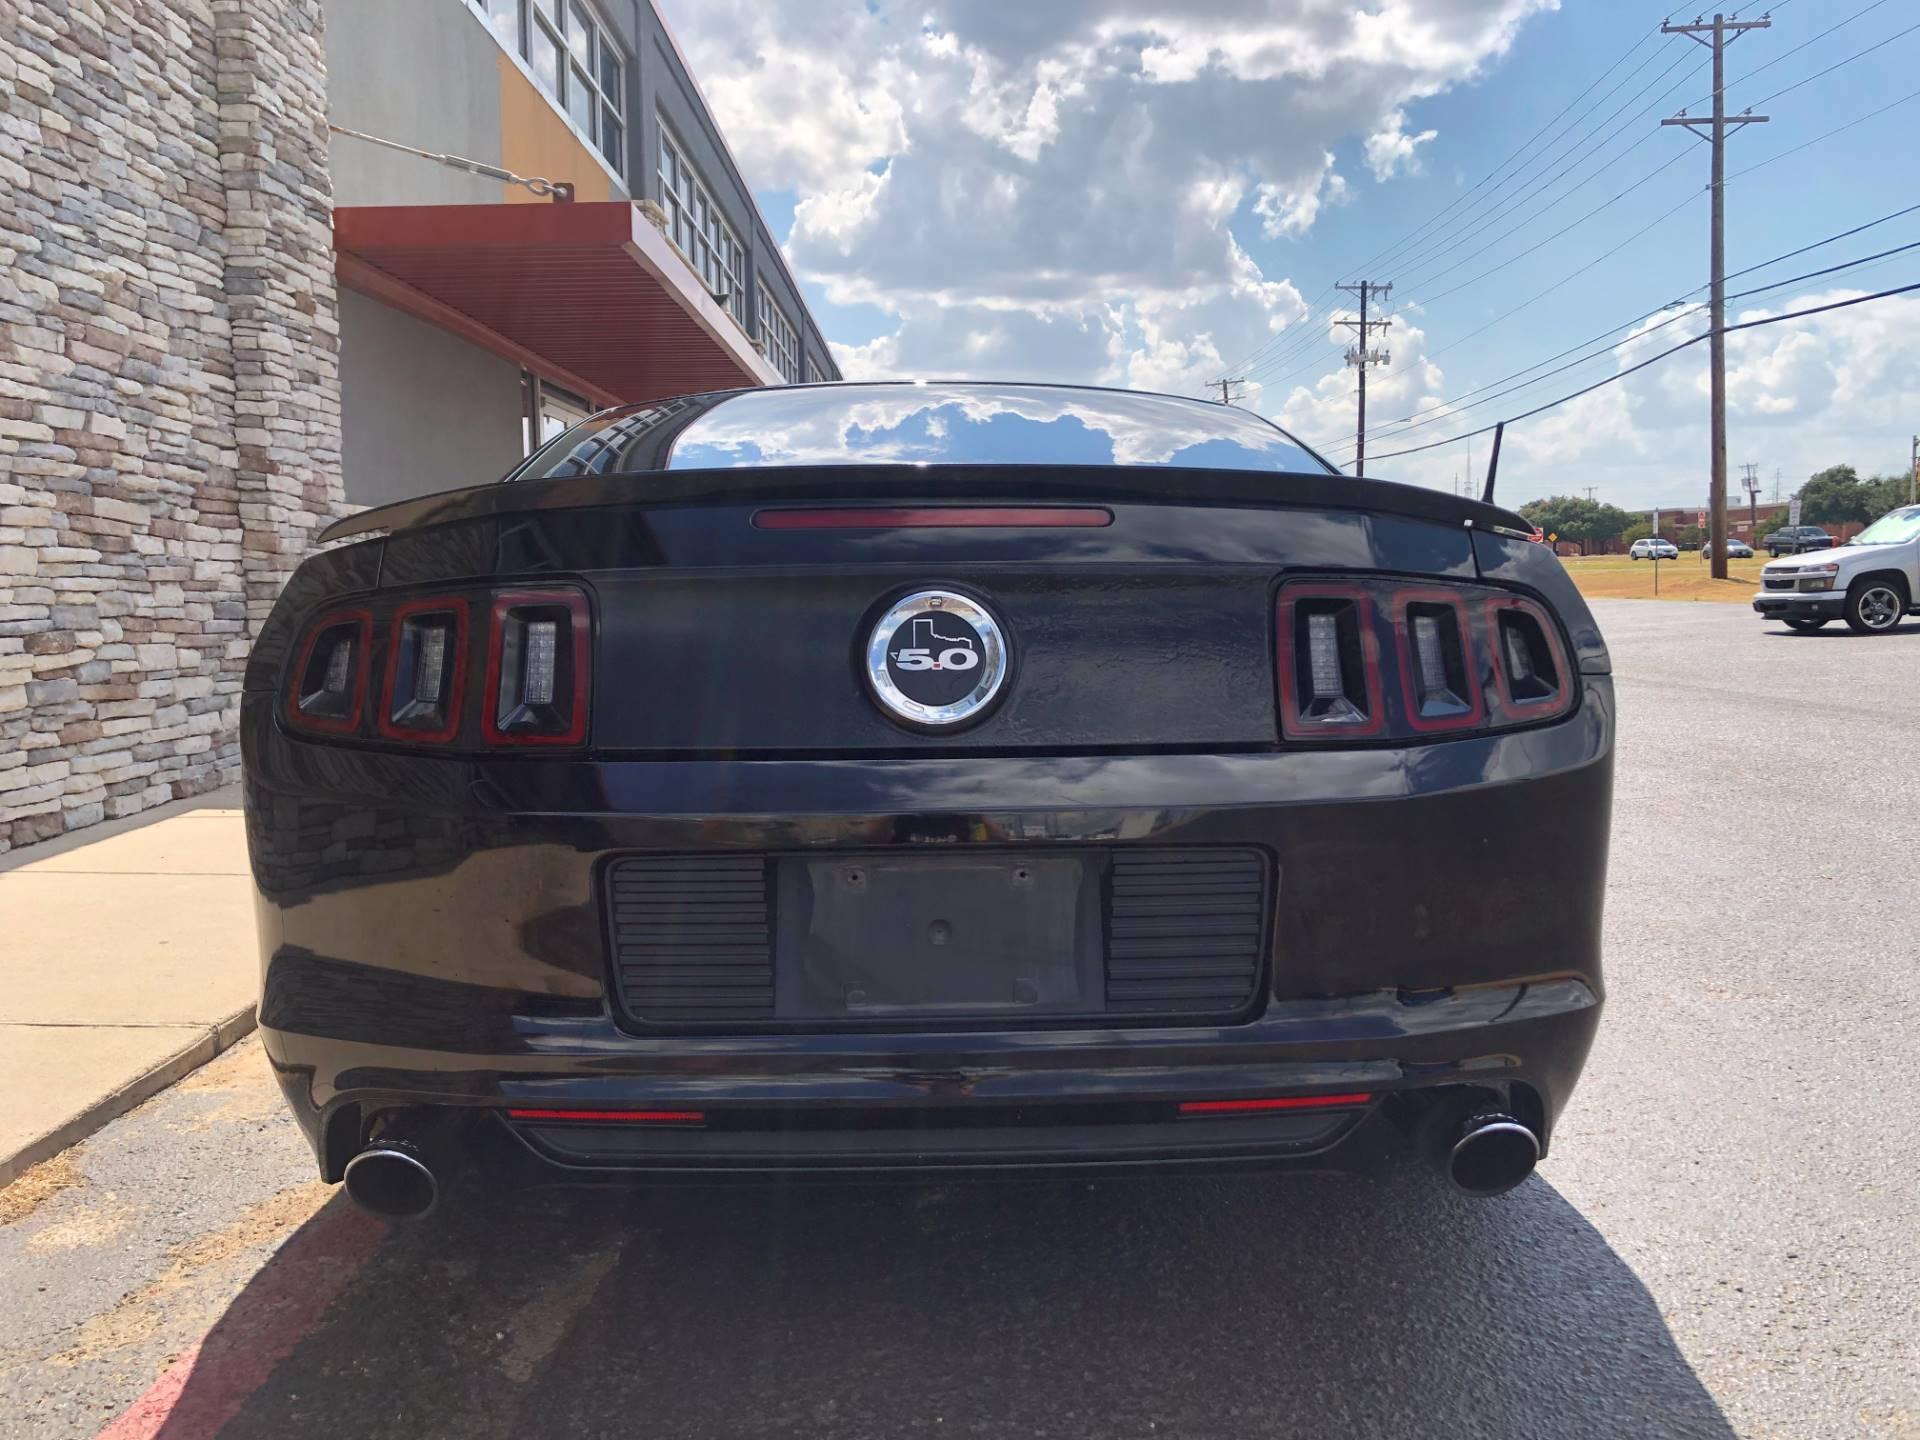 2013 Ford mustang in Waco, Texas - Photo 5